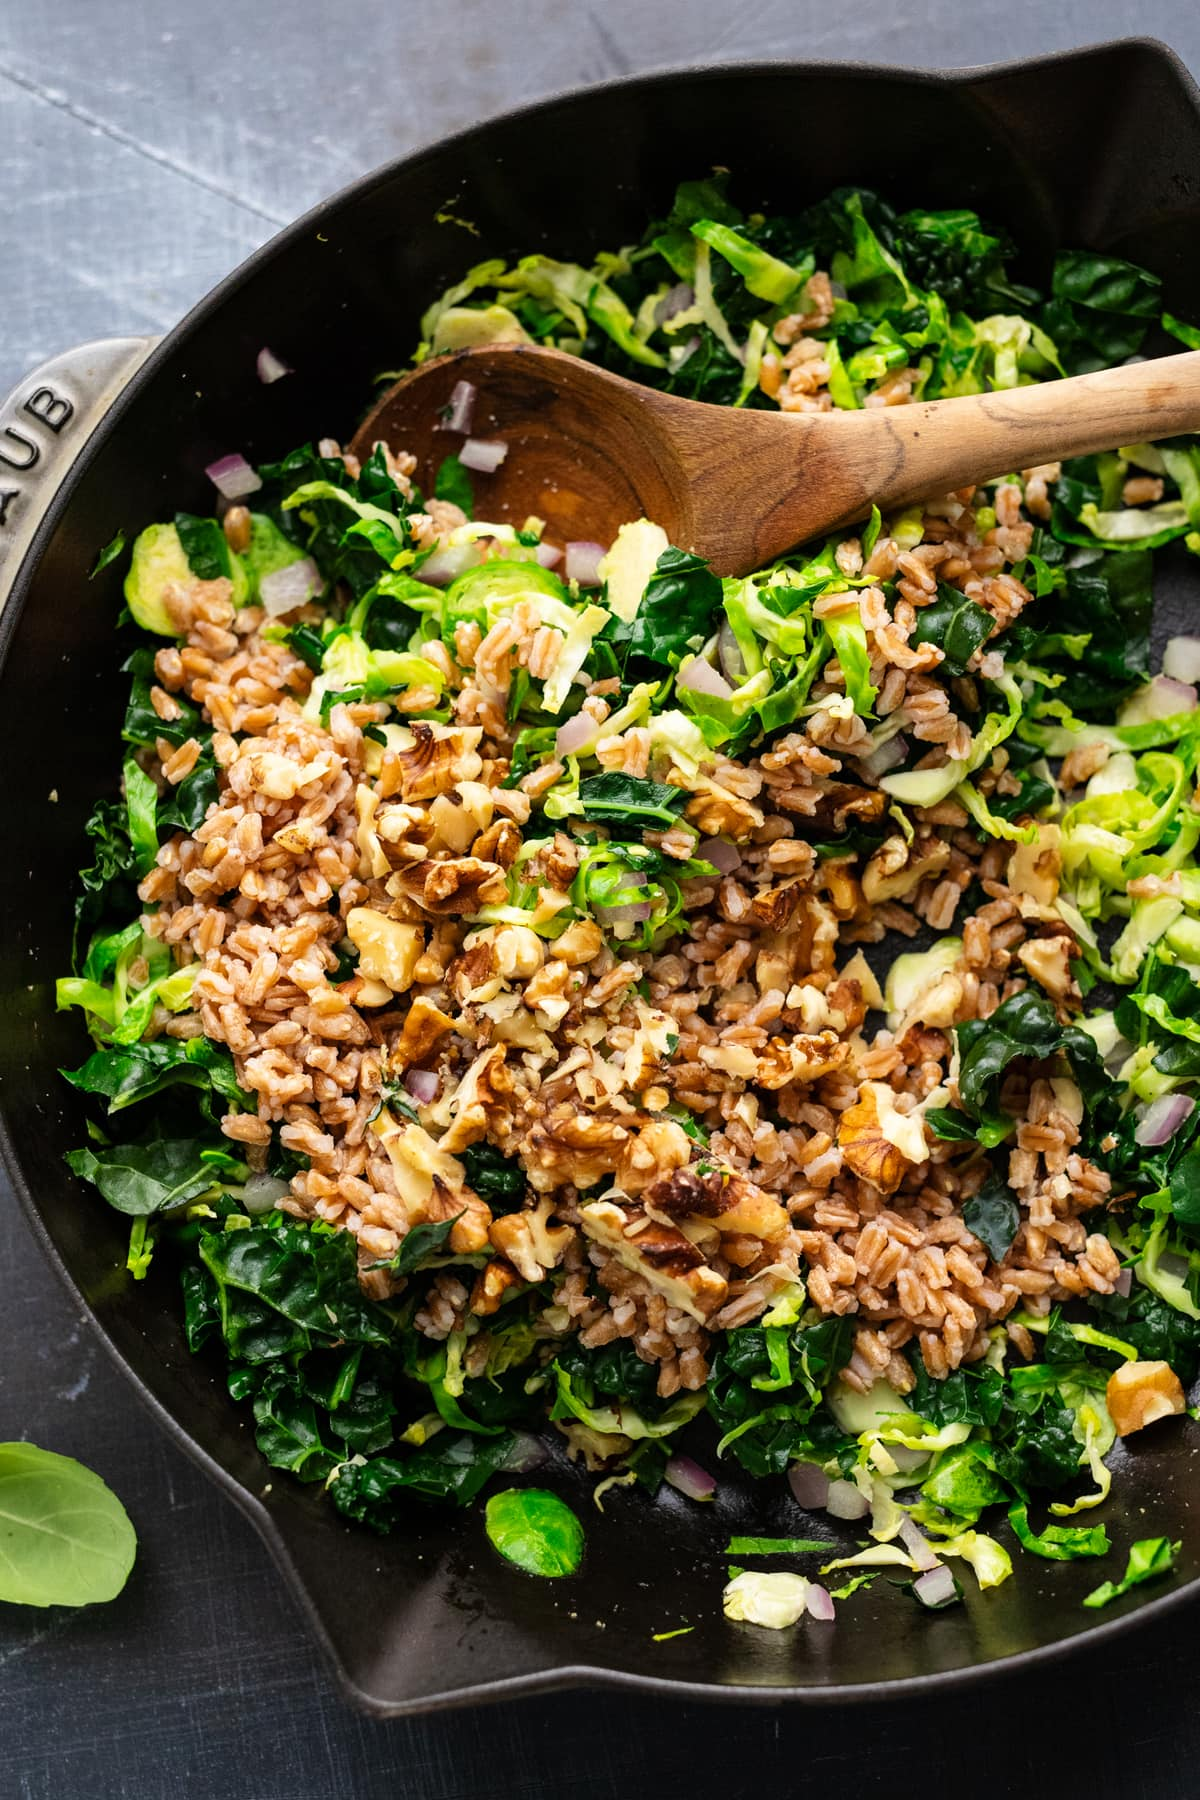 A wooden spoon stirring farro into sautéed greens in a cast iron skillet pan.